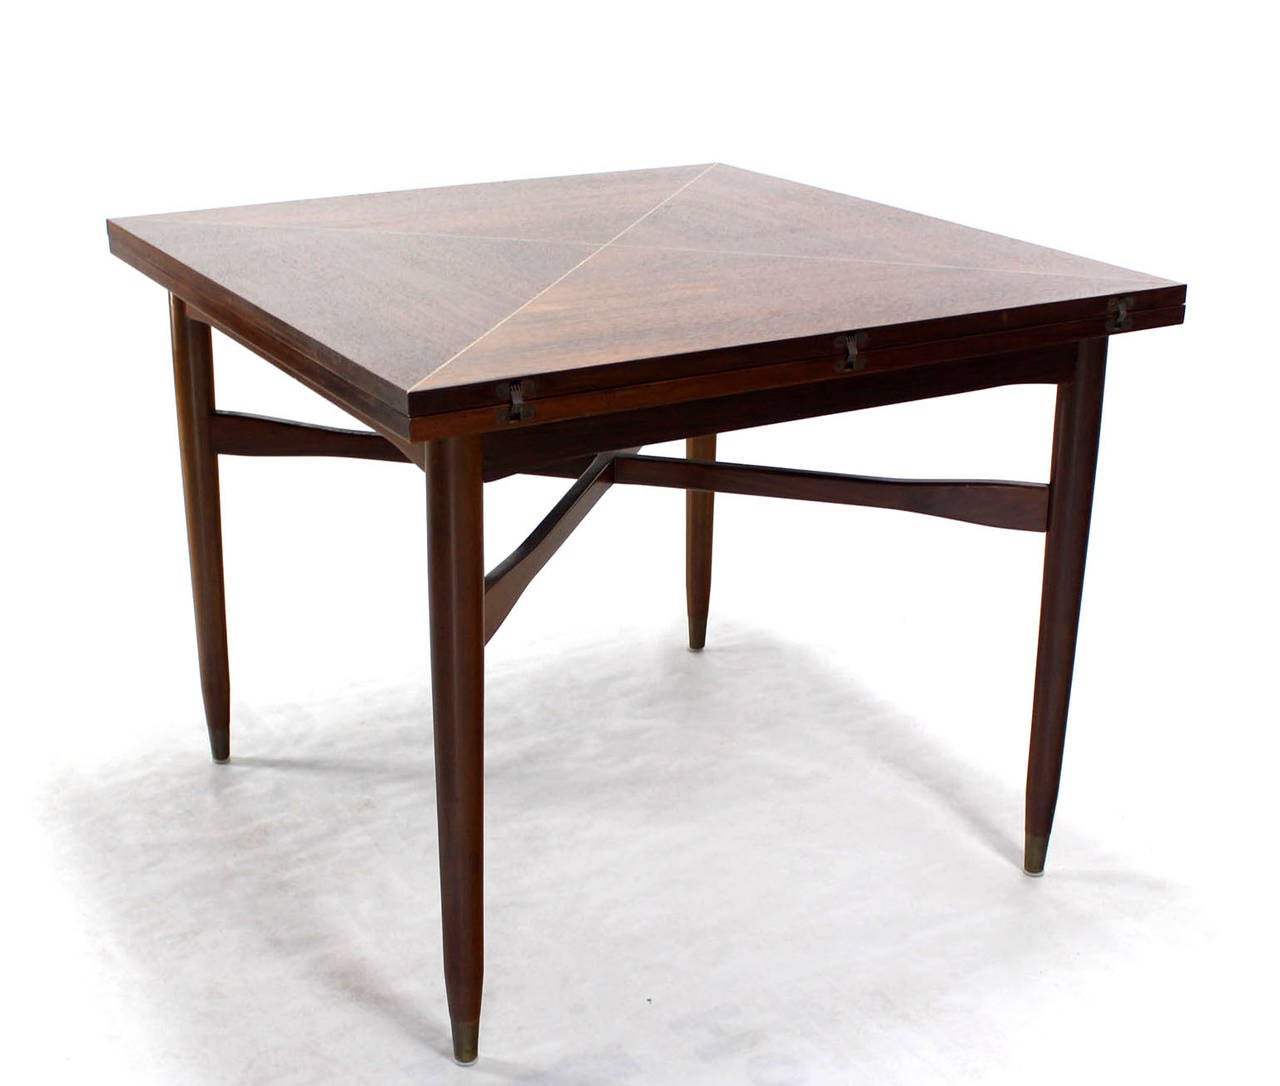 Walnut-Top with Brass Inlay, Mid-Century Modern Expandable Game Table 5